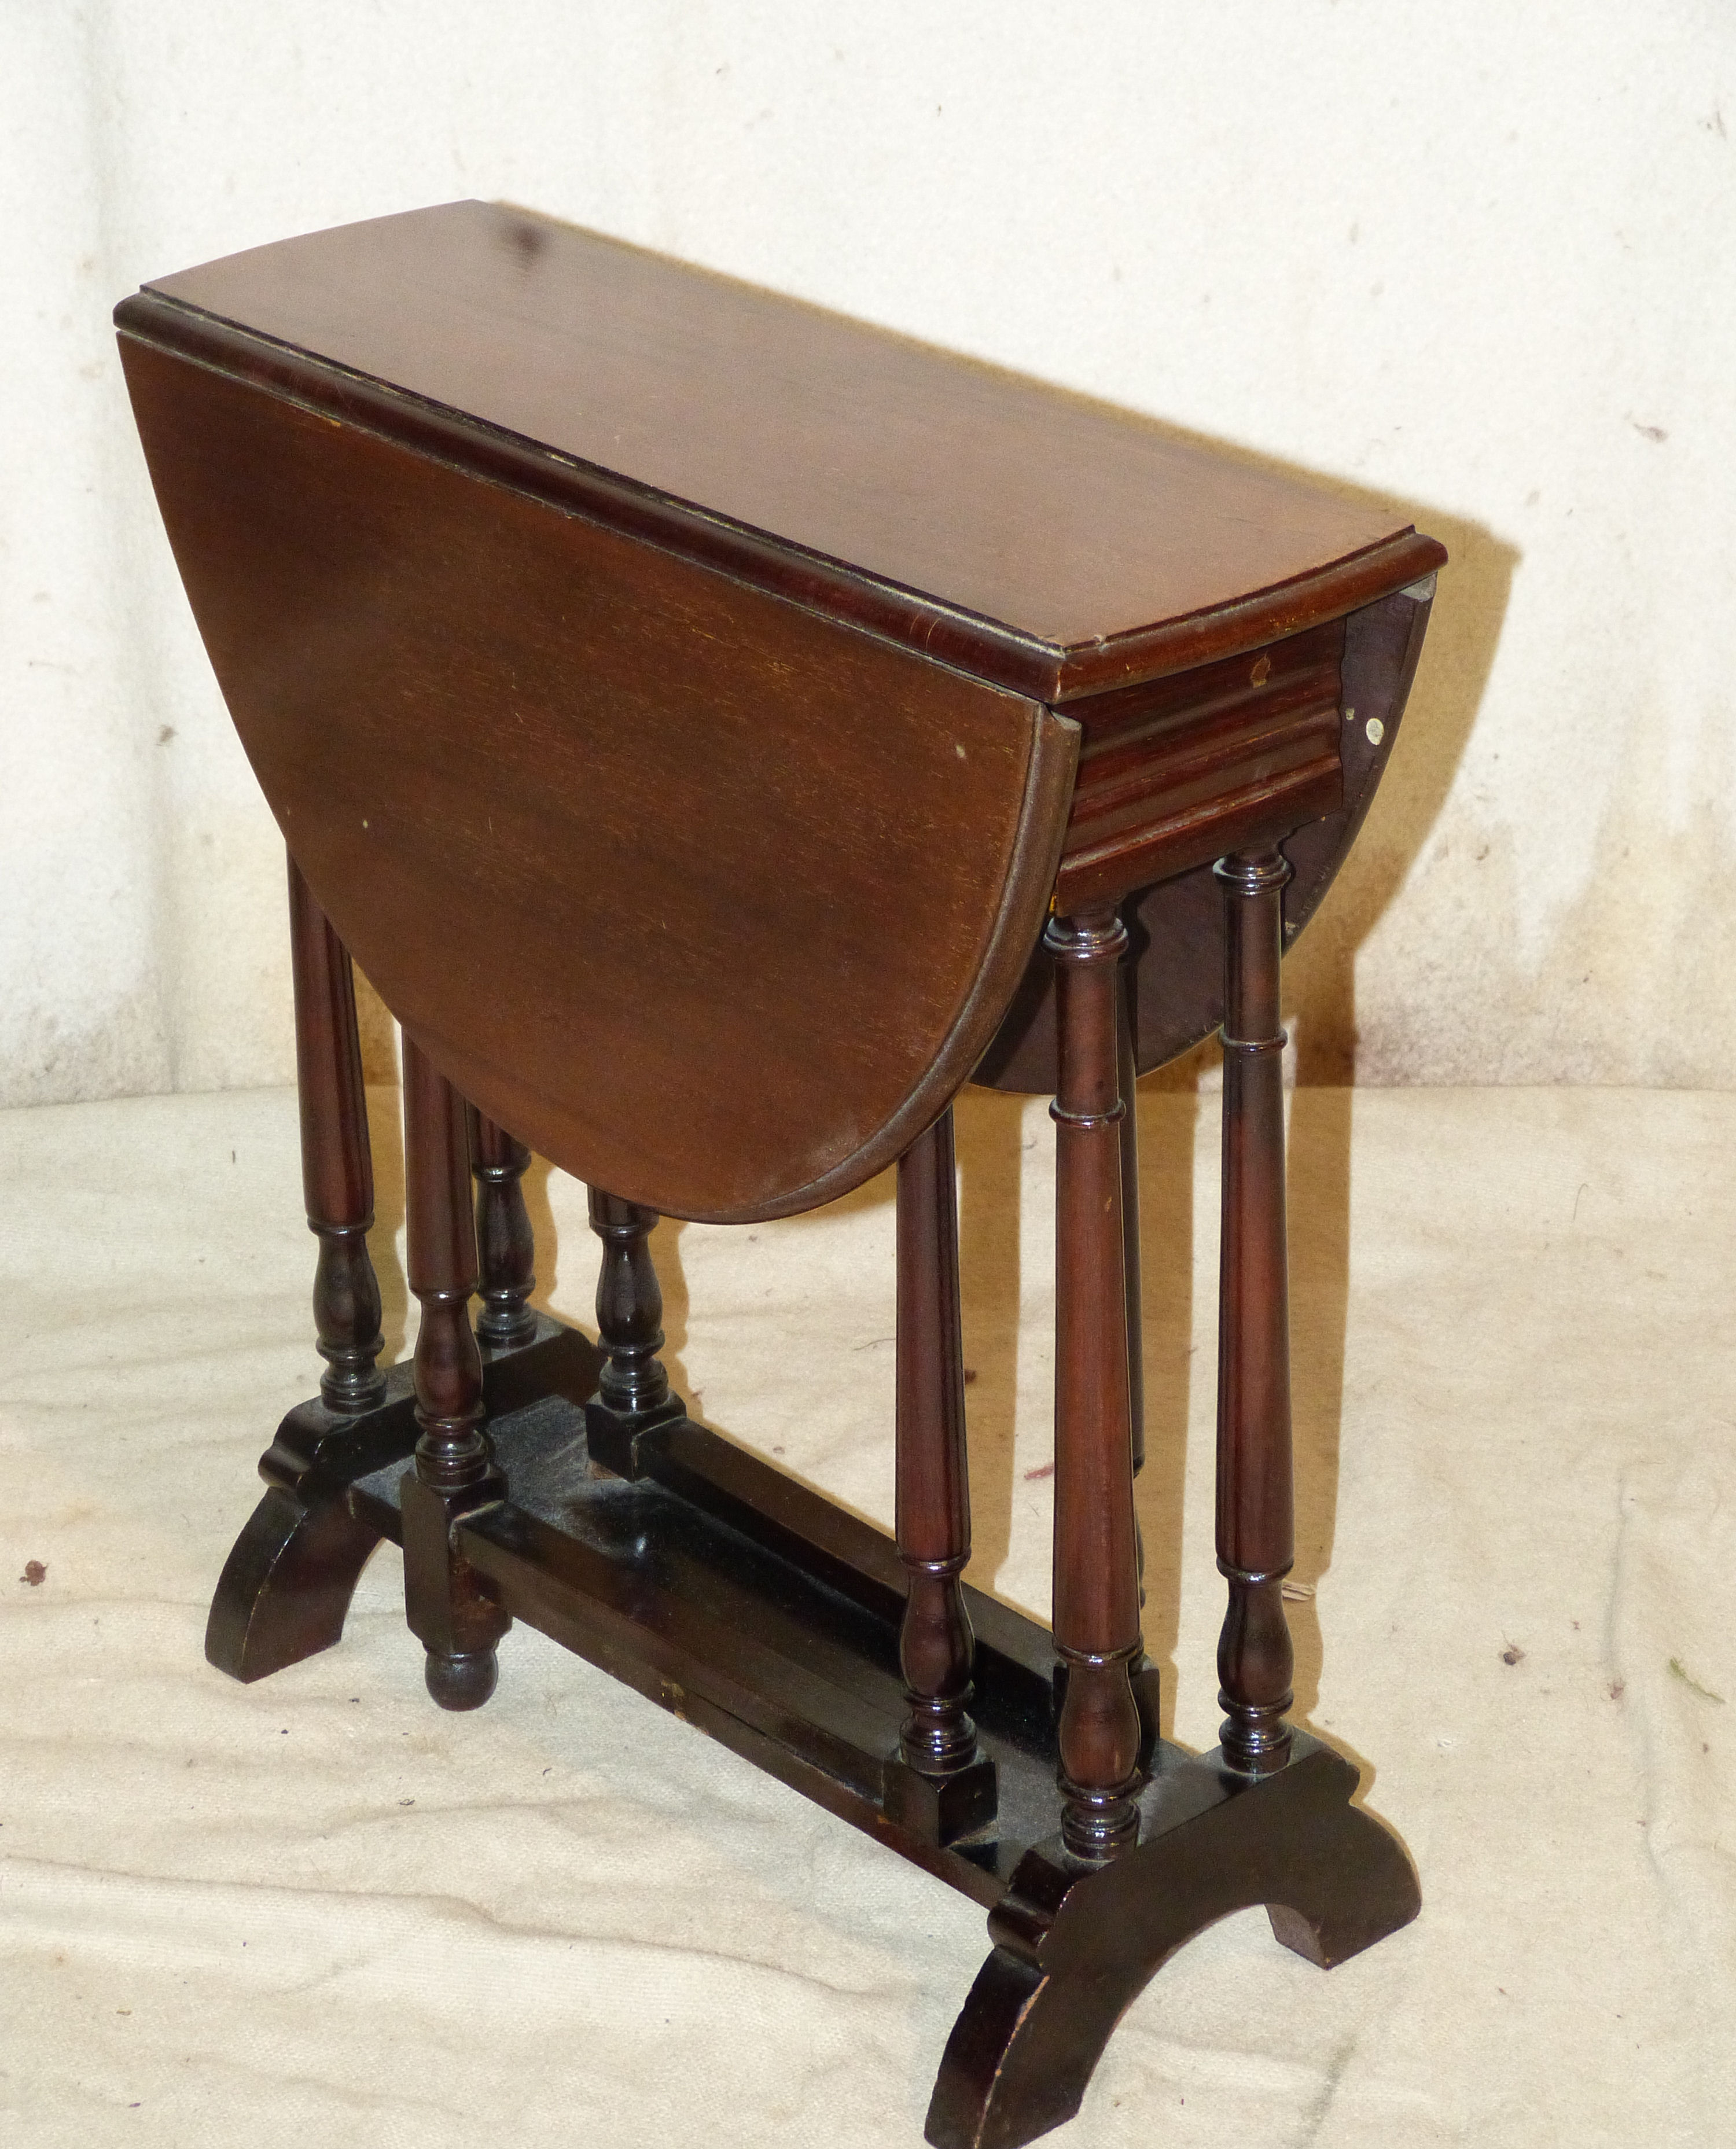 A Mahogany Small Oval Drop Leaf Sutherland Table on round turned legs